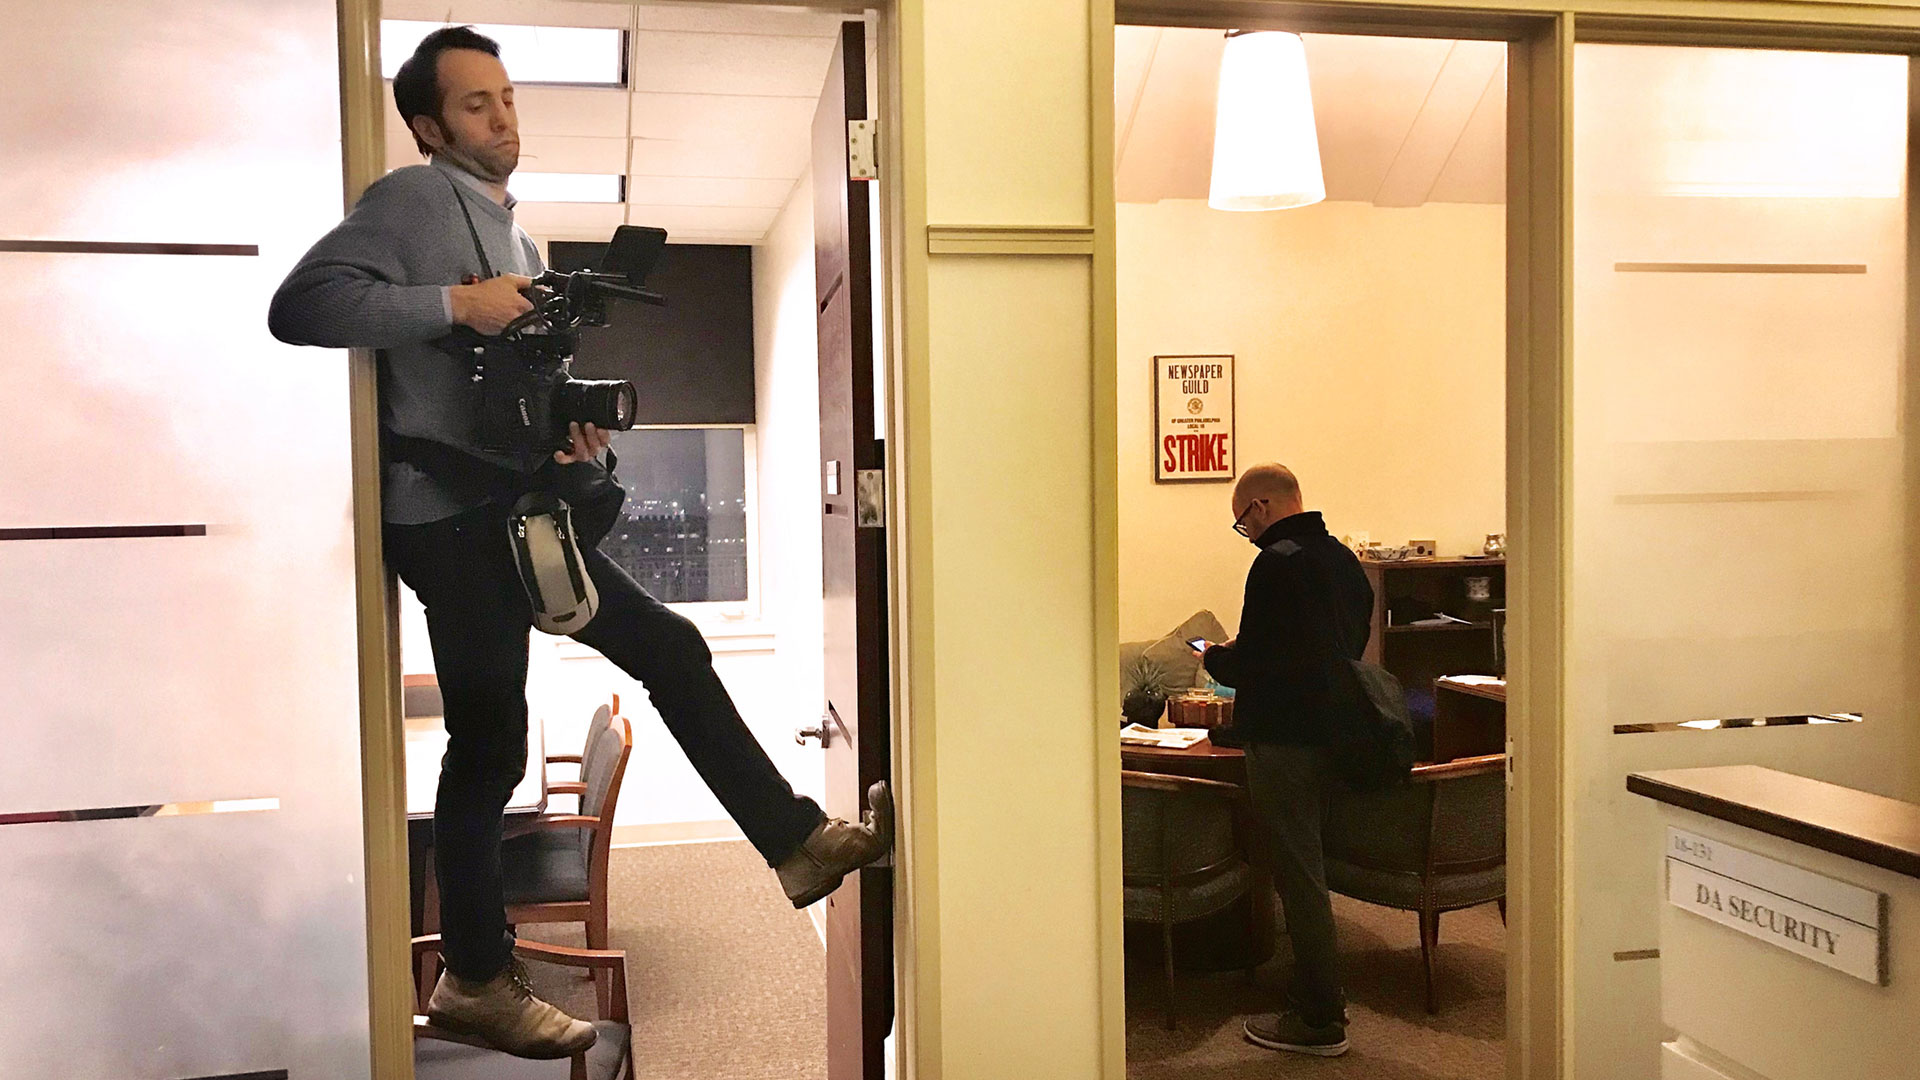 """Yoni Brook precariously, filming of """"Philly D.A."""" awkwardly positioned in doorway with camera"""